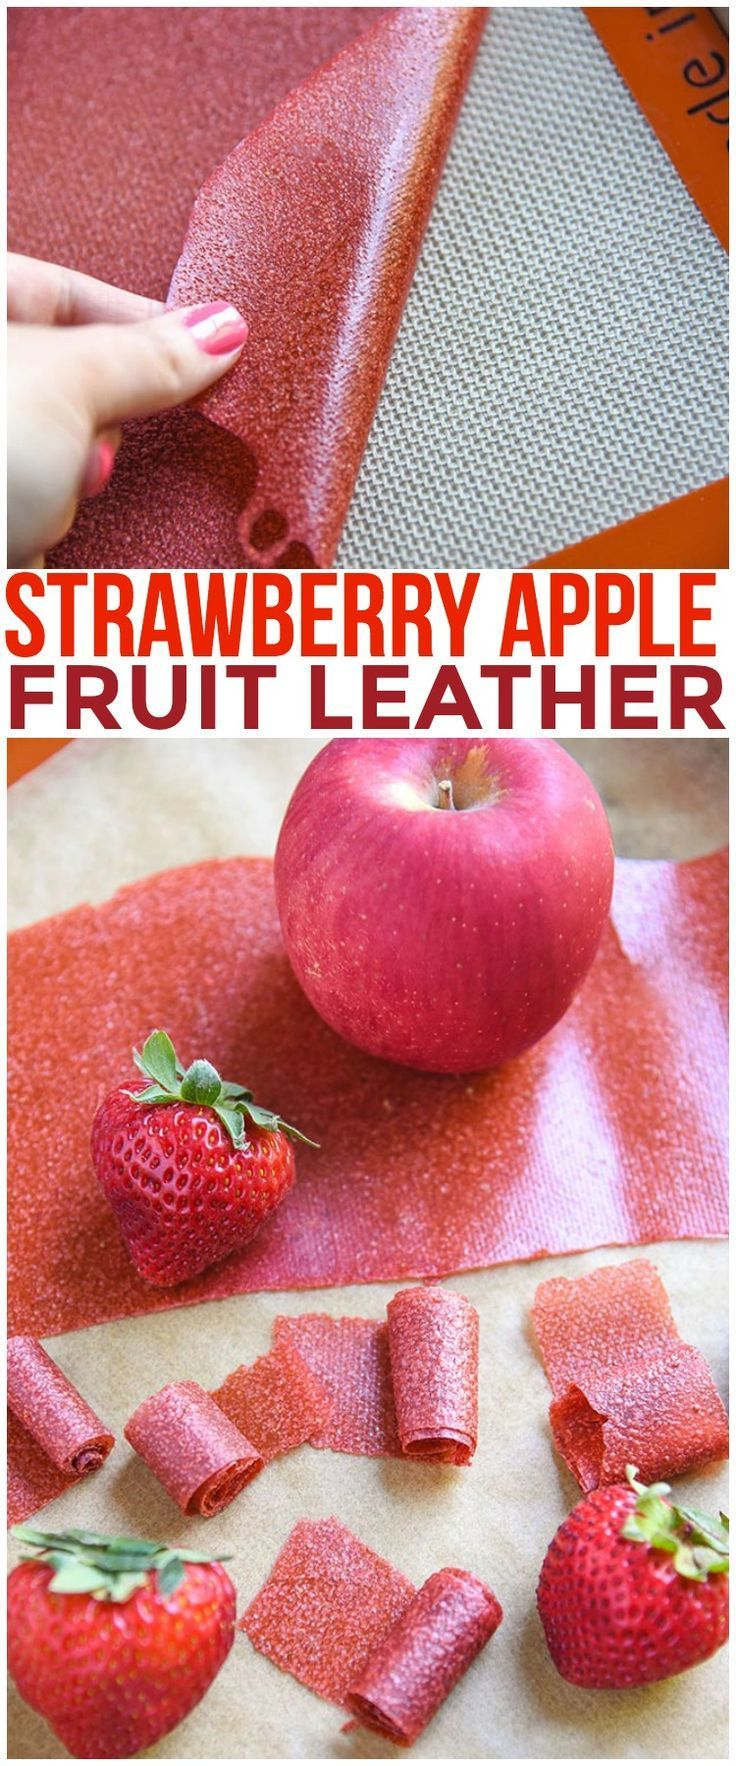 We're taking you back to childhood with our Homemade Fruit Leather Recipe! Organic applesauce and organic strawberries are all you need for this Strawberry Apple Fruit Leather Recipe.Organic applesauce via @CourtneysSweets